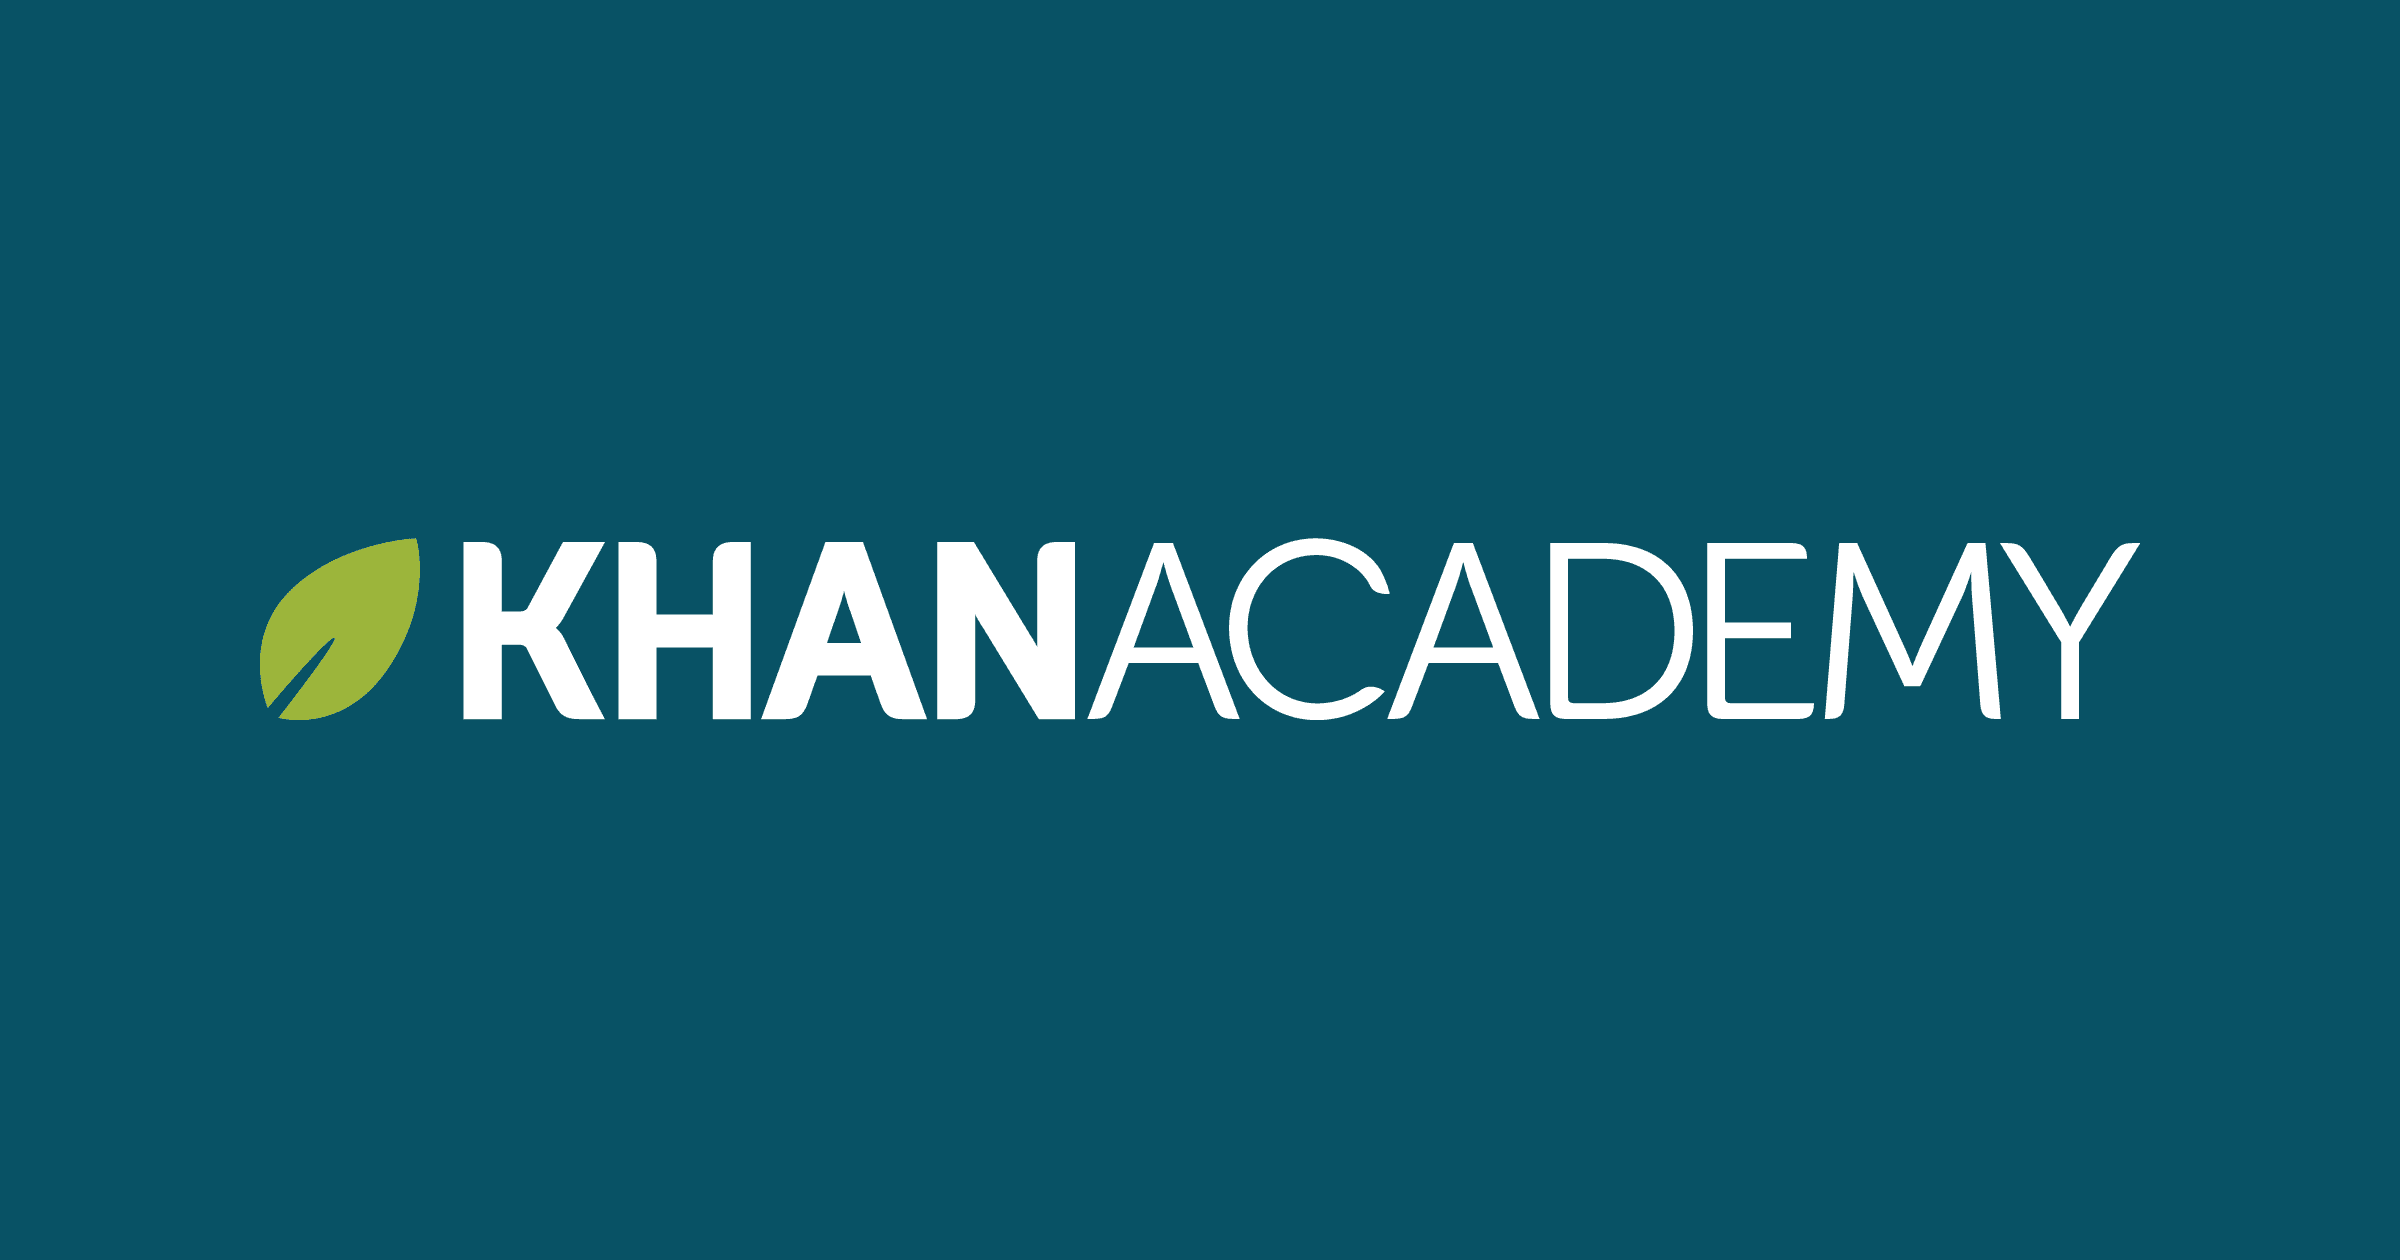 An ode to Khan Academy – Caitanya Singh Jaswal